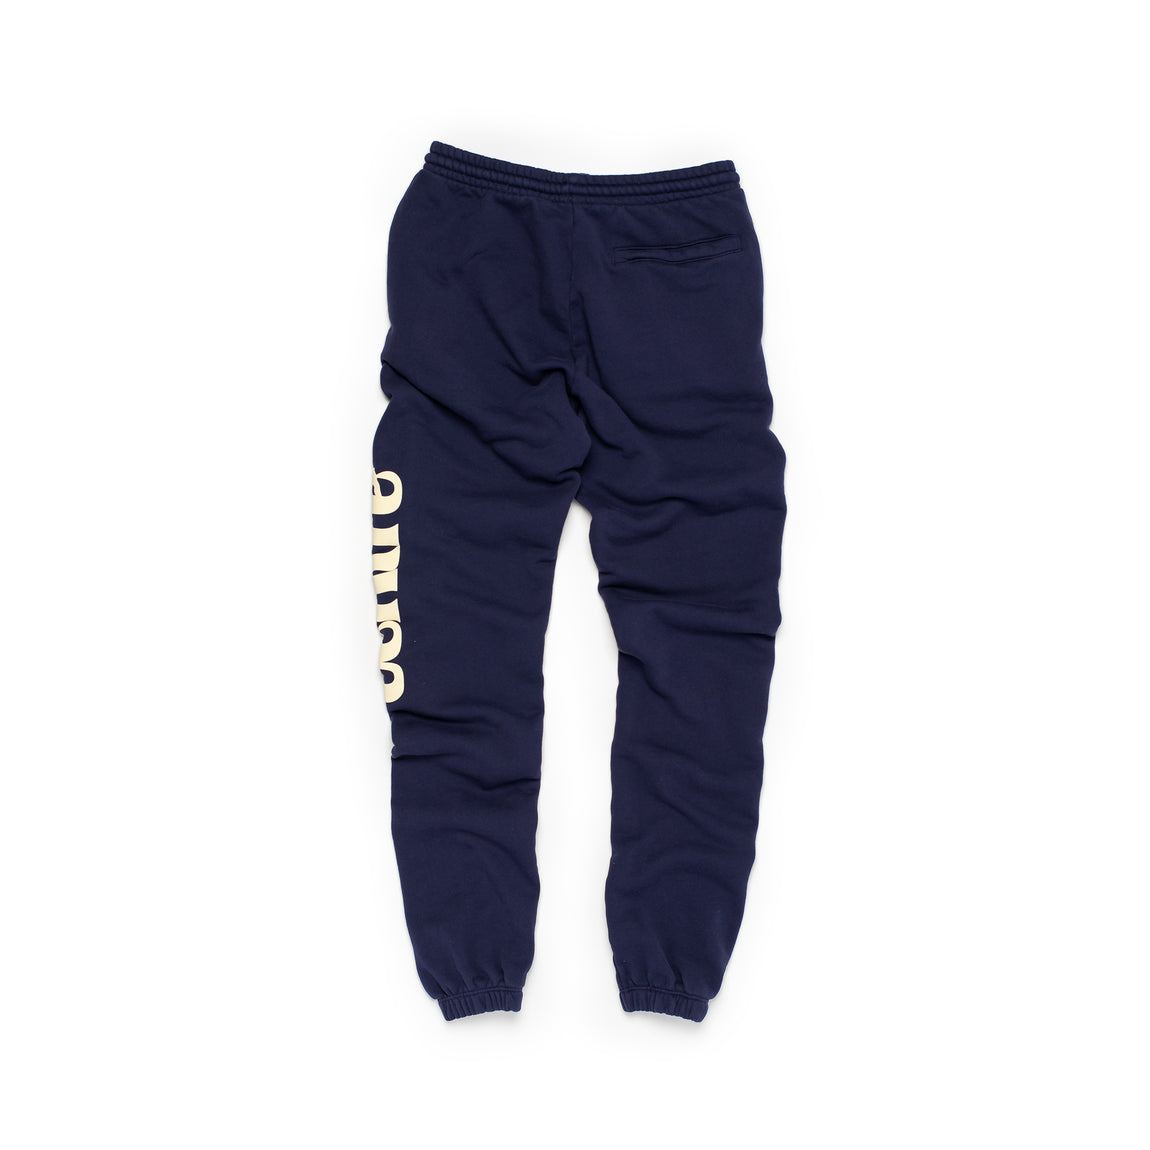 Centre Homegrown Fleece Pants (Midnight) - Centre Homegrown Fleece Pants (Midnight) -